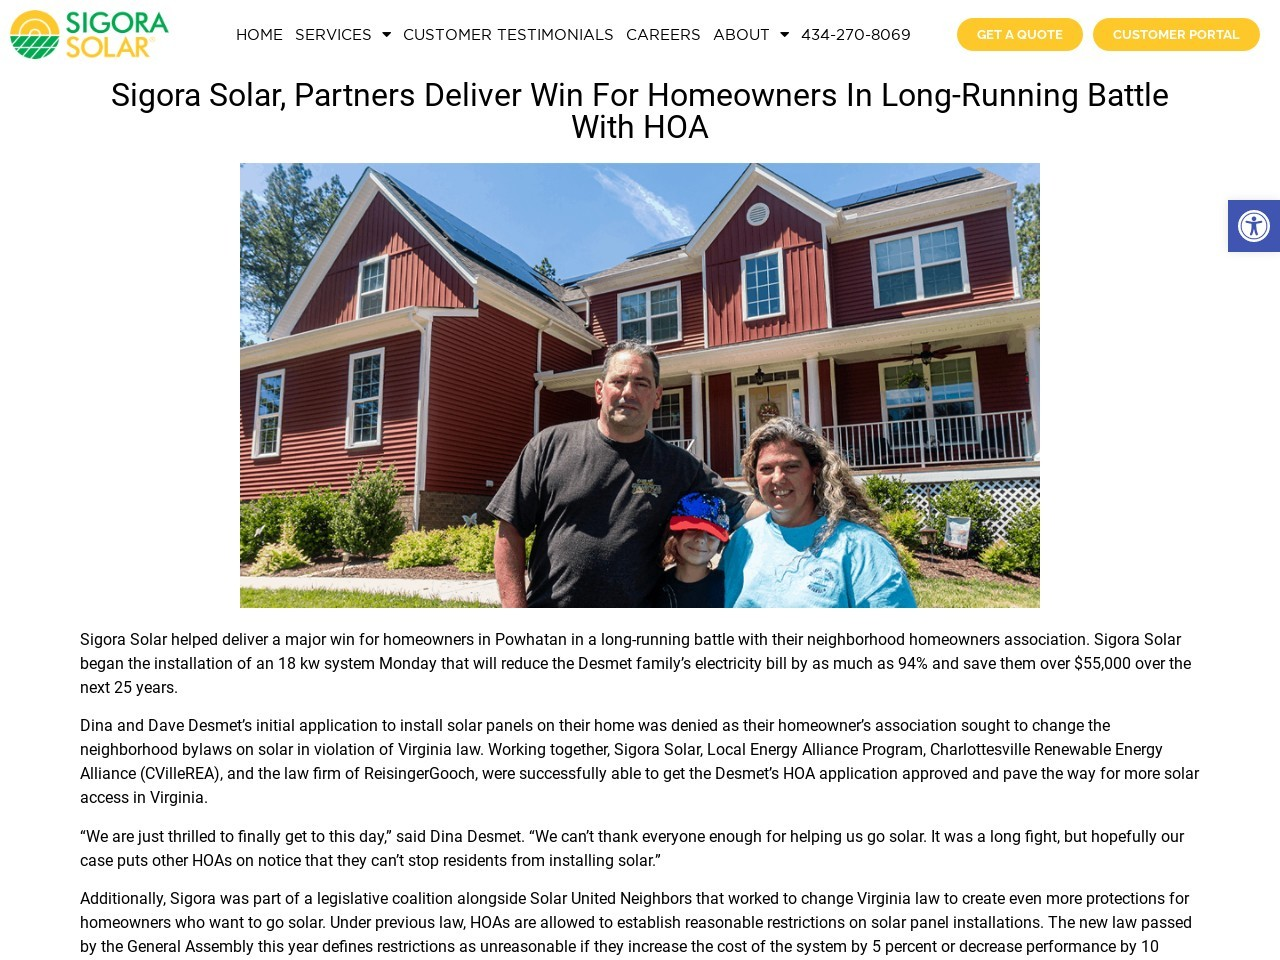 Sigora Solar, Partners Deliver Win For Homeowners In Long-Running Battle With HOA